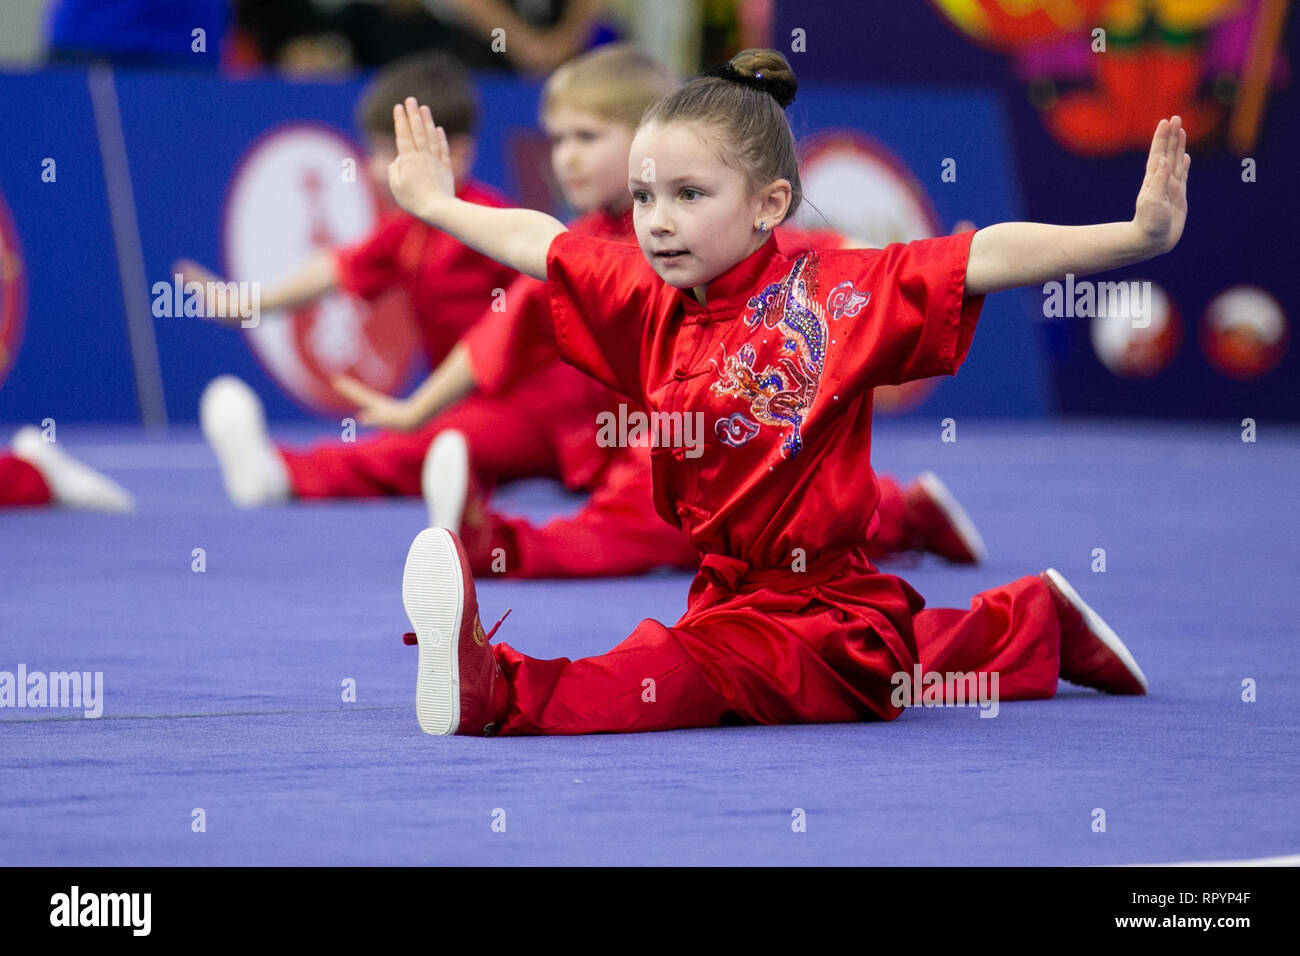 Moscow, Russia. 23rd Feb, 2019. Competitors perform during the opening ceremony for the Moscow Wushu Stars 2019 competition in Moscow, Russia, on Feb. 23, 2019. Credit: Bai Xueqi/Xinhua/Alamy Live News Stock Photo